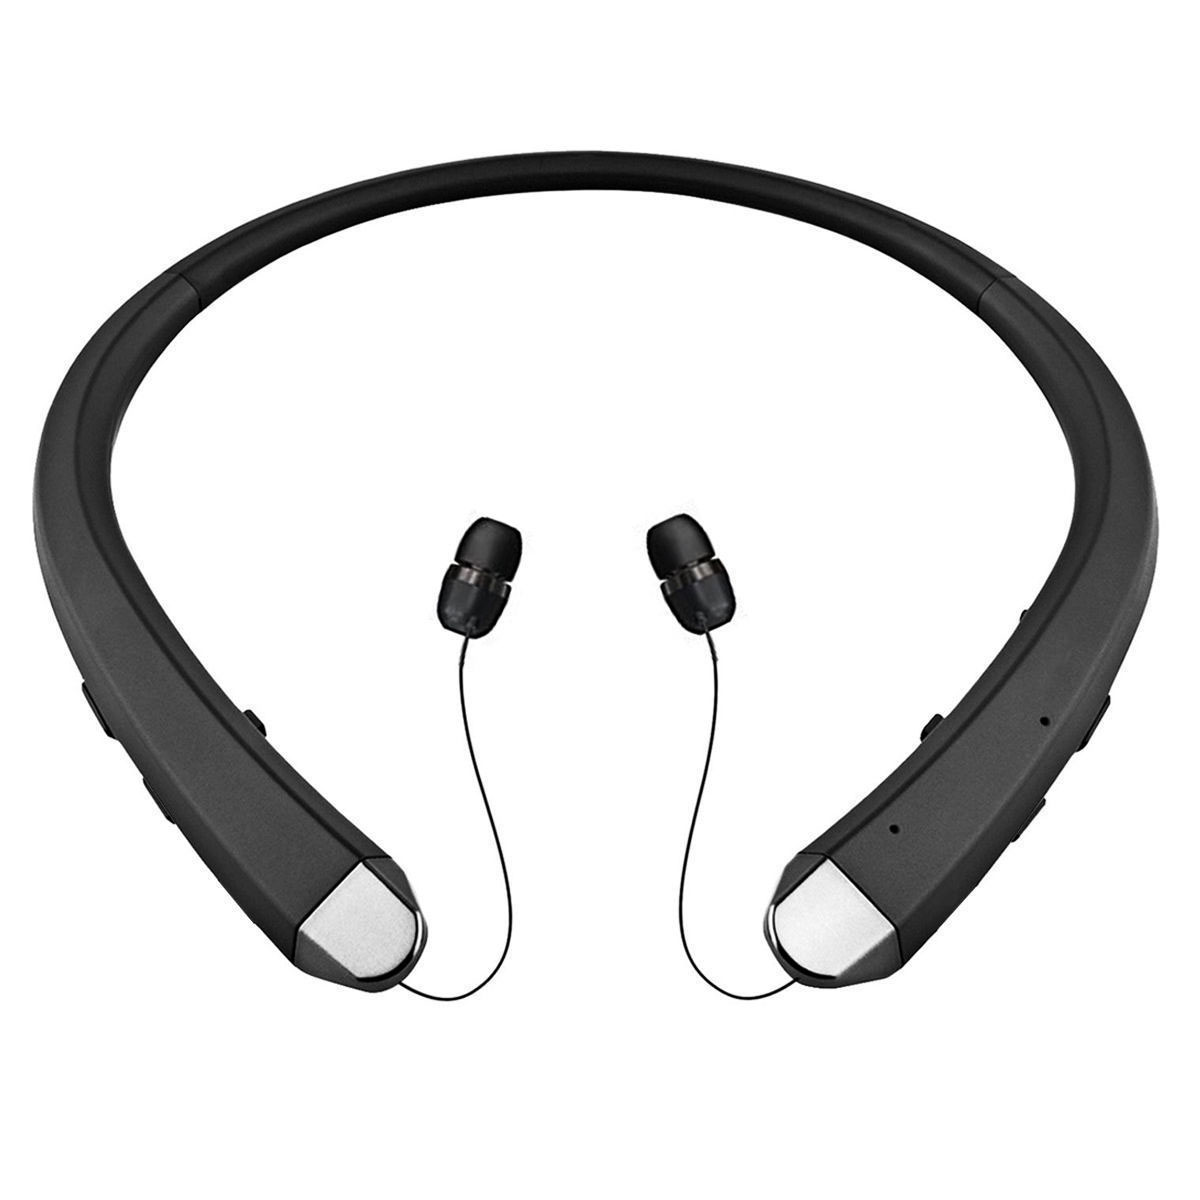 Wireless Bluetooth 4.0 NeckBand Headset Sport Stereo Retractable Headphone Earbuds Earphone with MIC Microphone(Black)